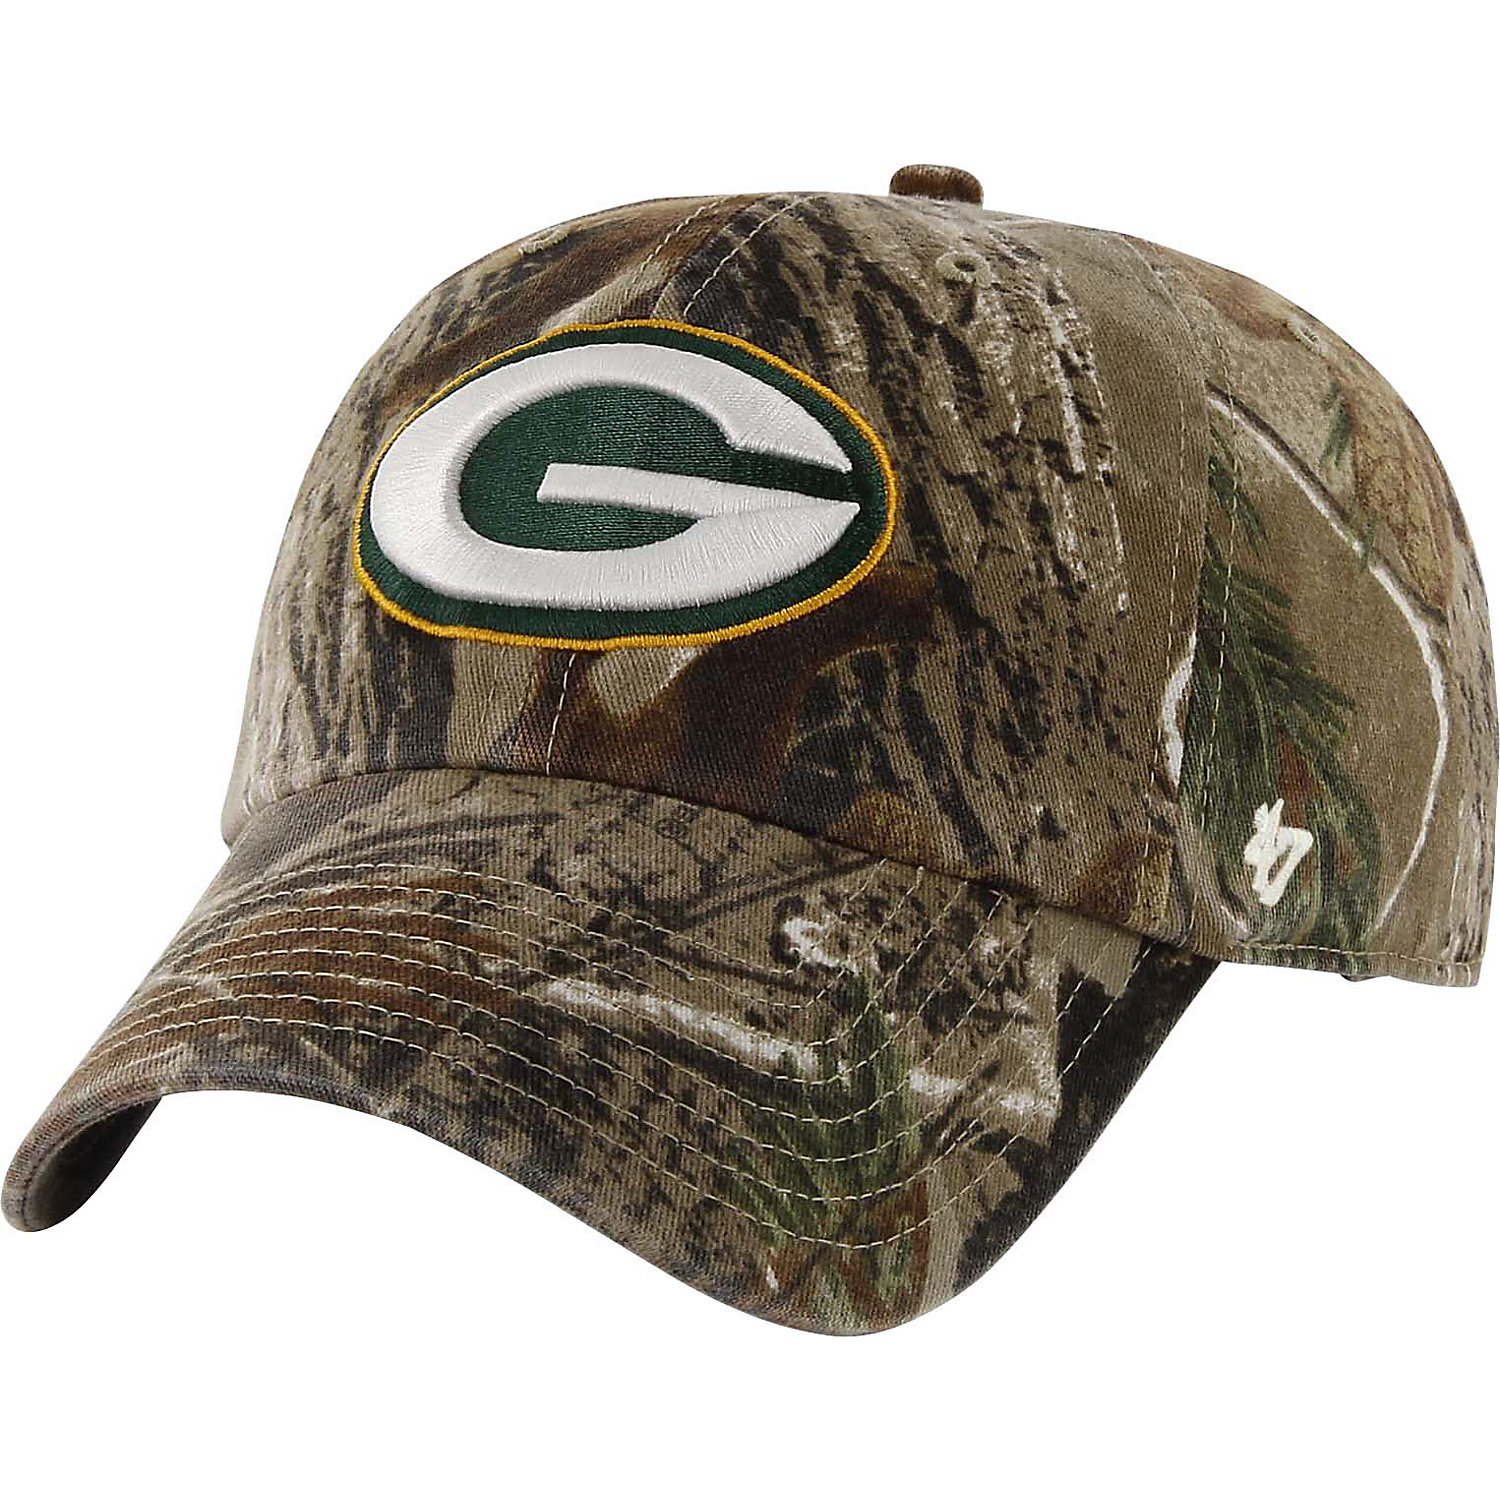 '47 Brand Green Bay Packers NFL Realtree Camo Clean Up Cap